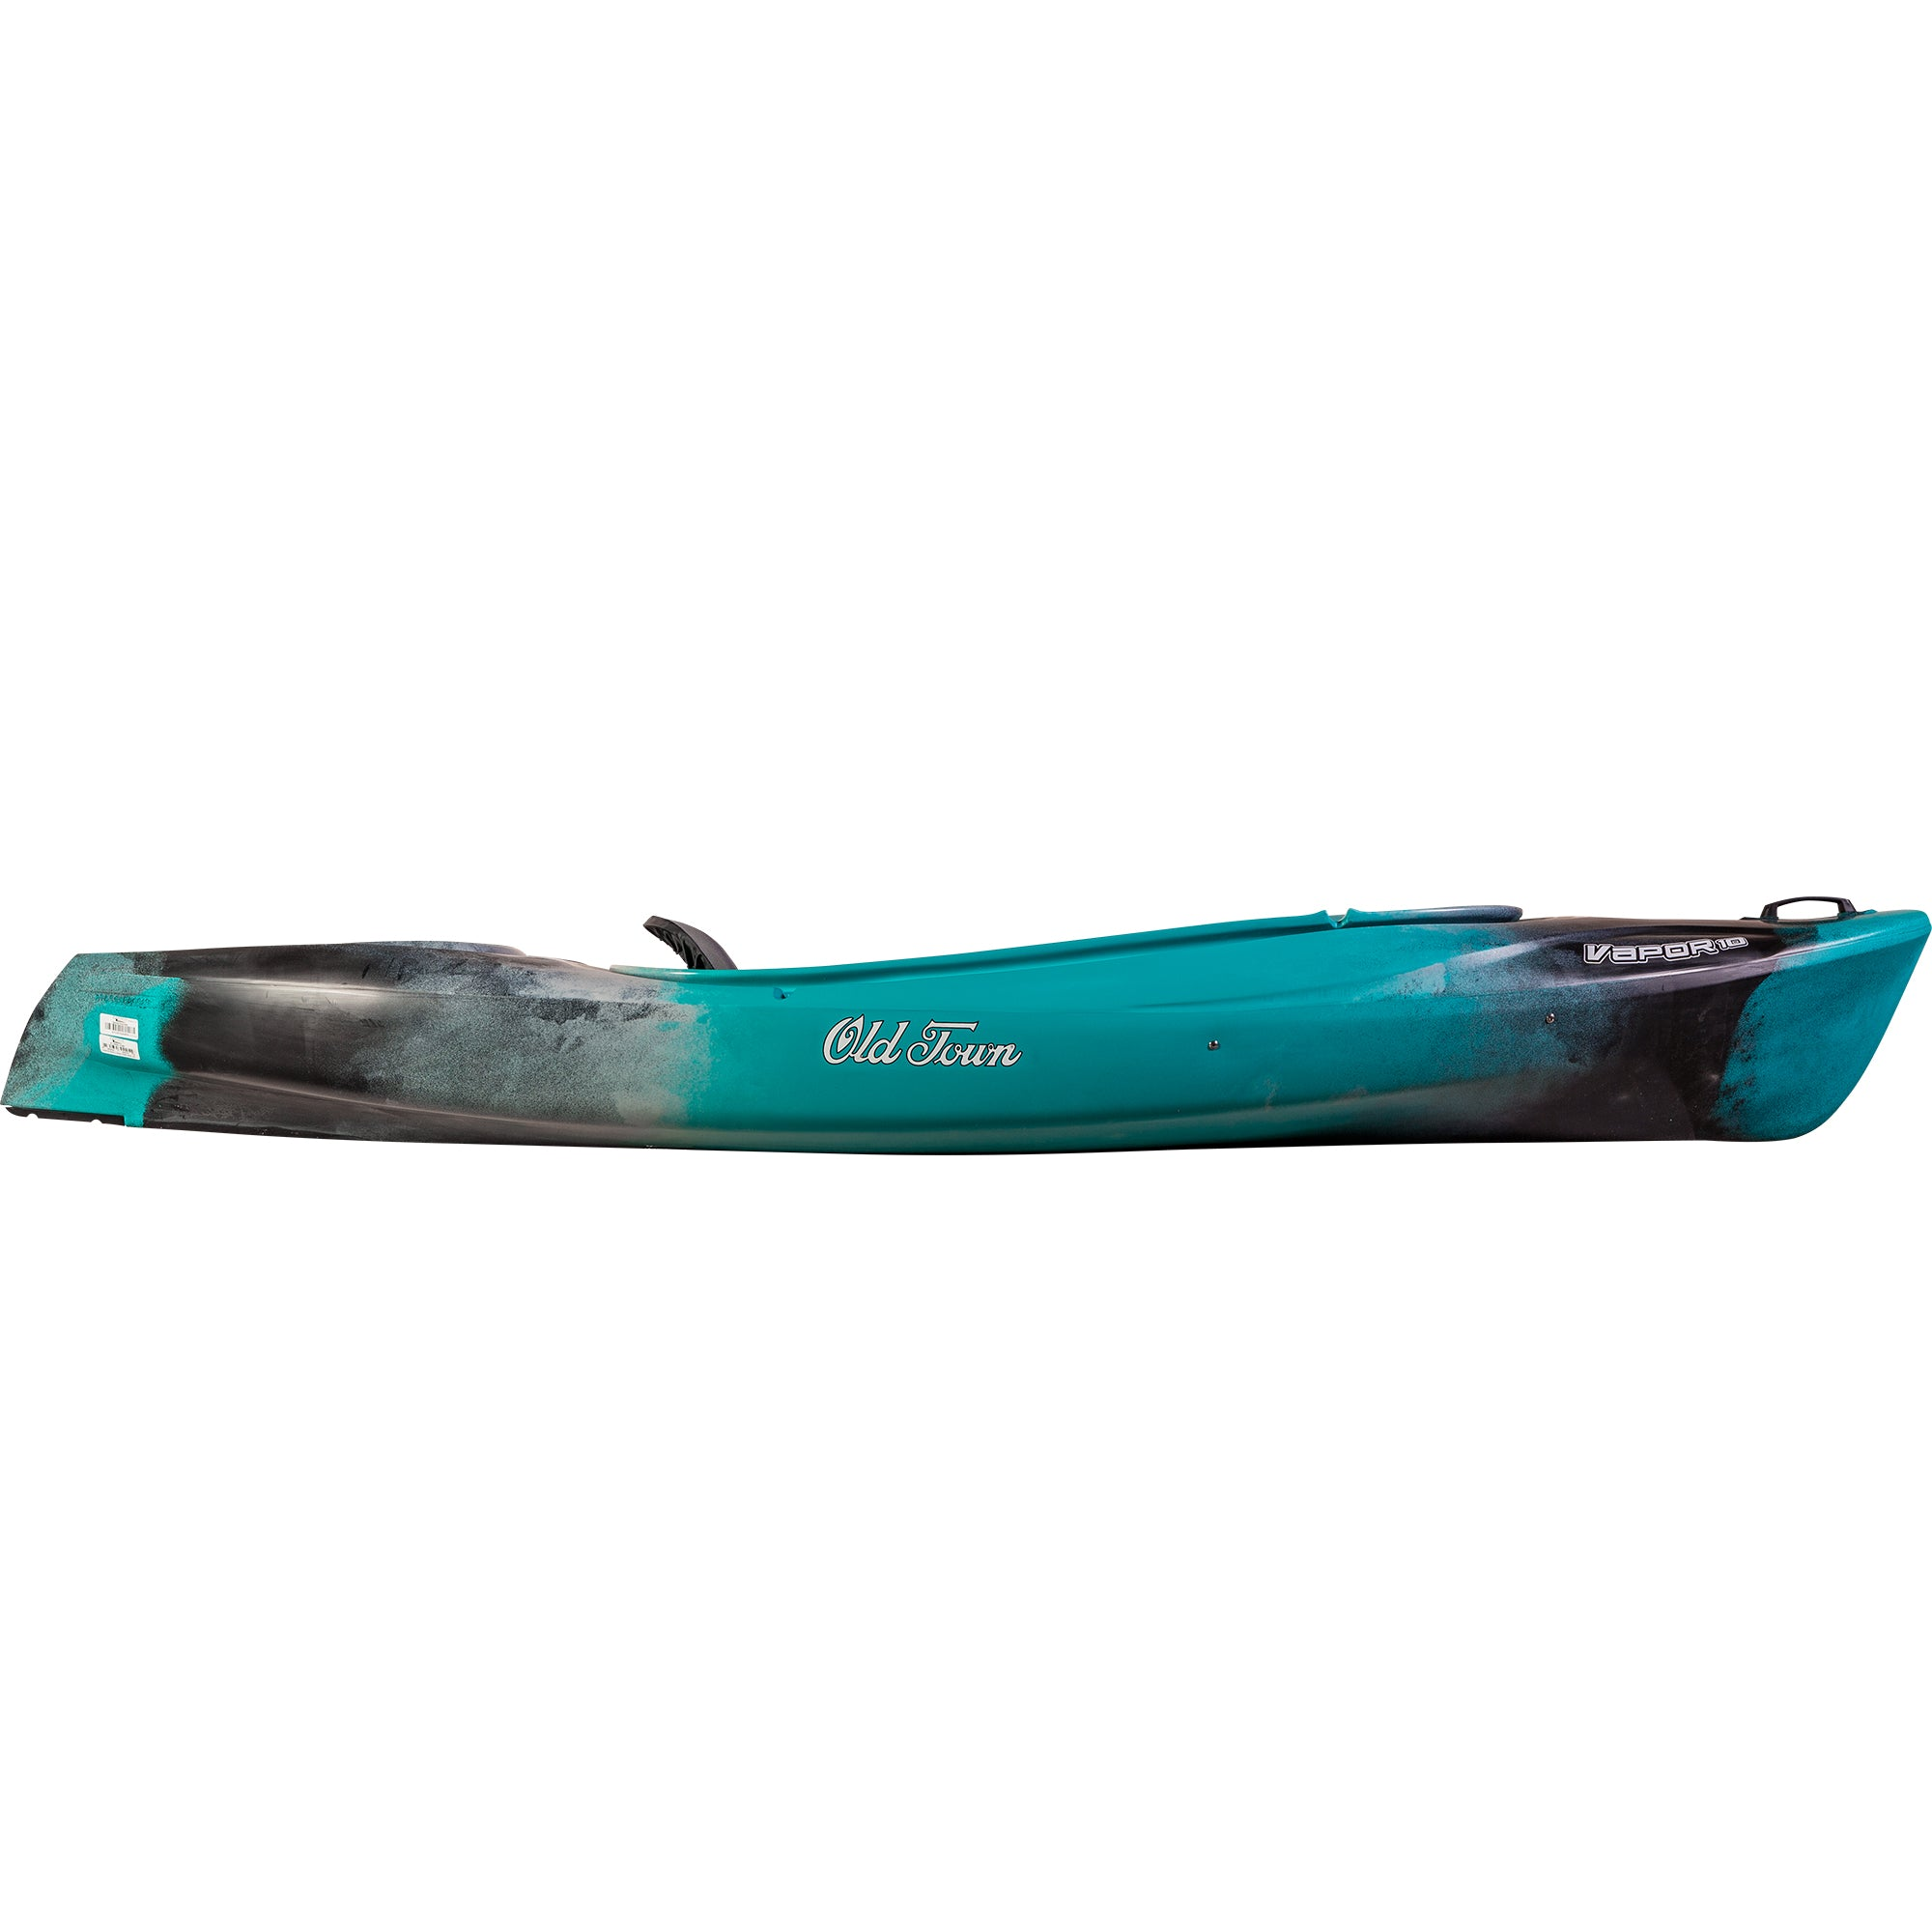 Old Town Vapor 10 Kayak - Gear For Adventure